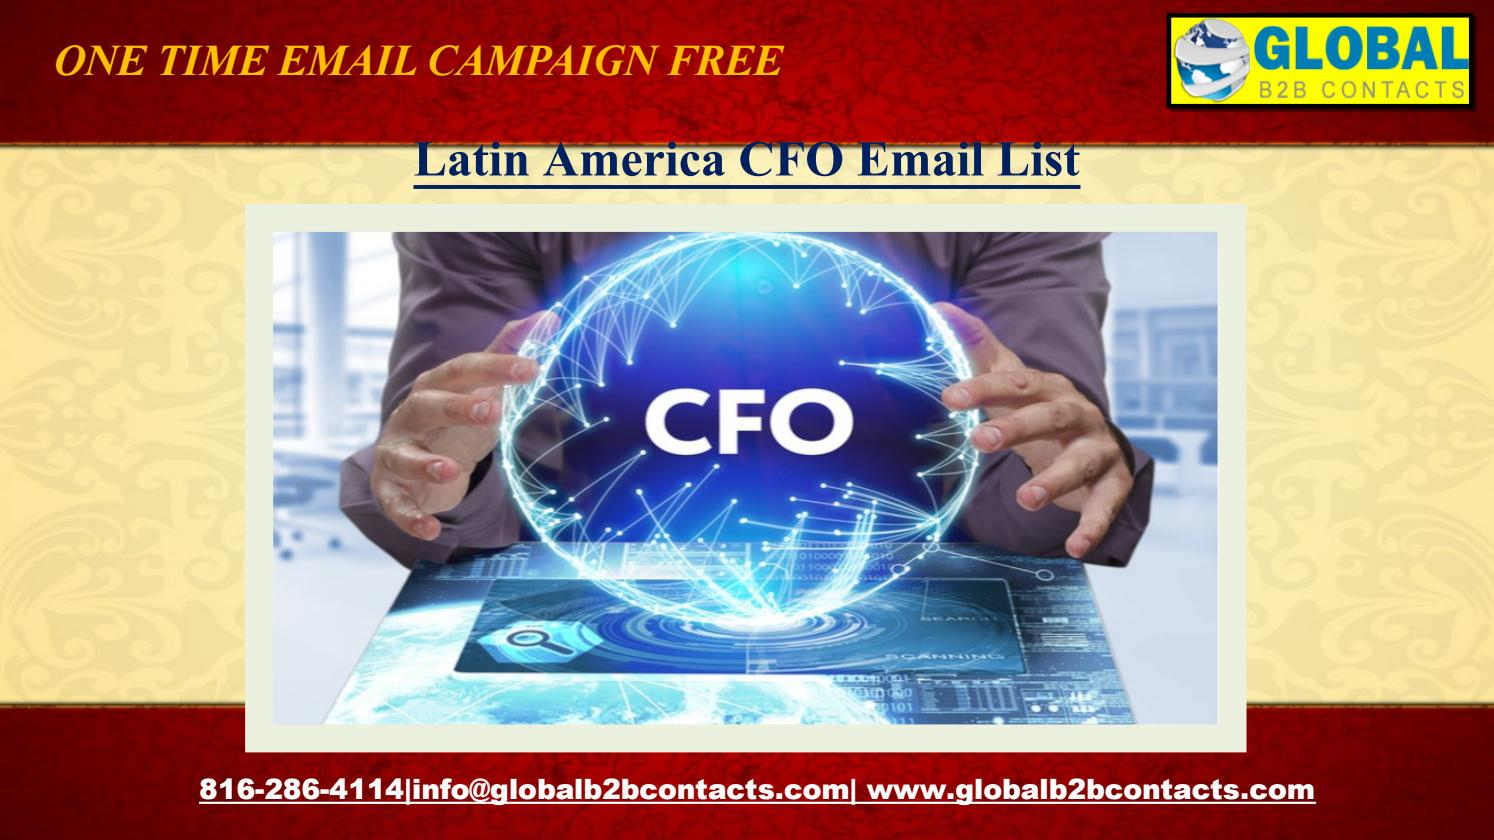 Latin America CFO Email List by dylangloria99 - issuu